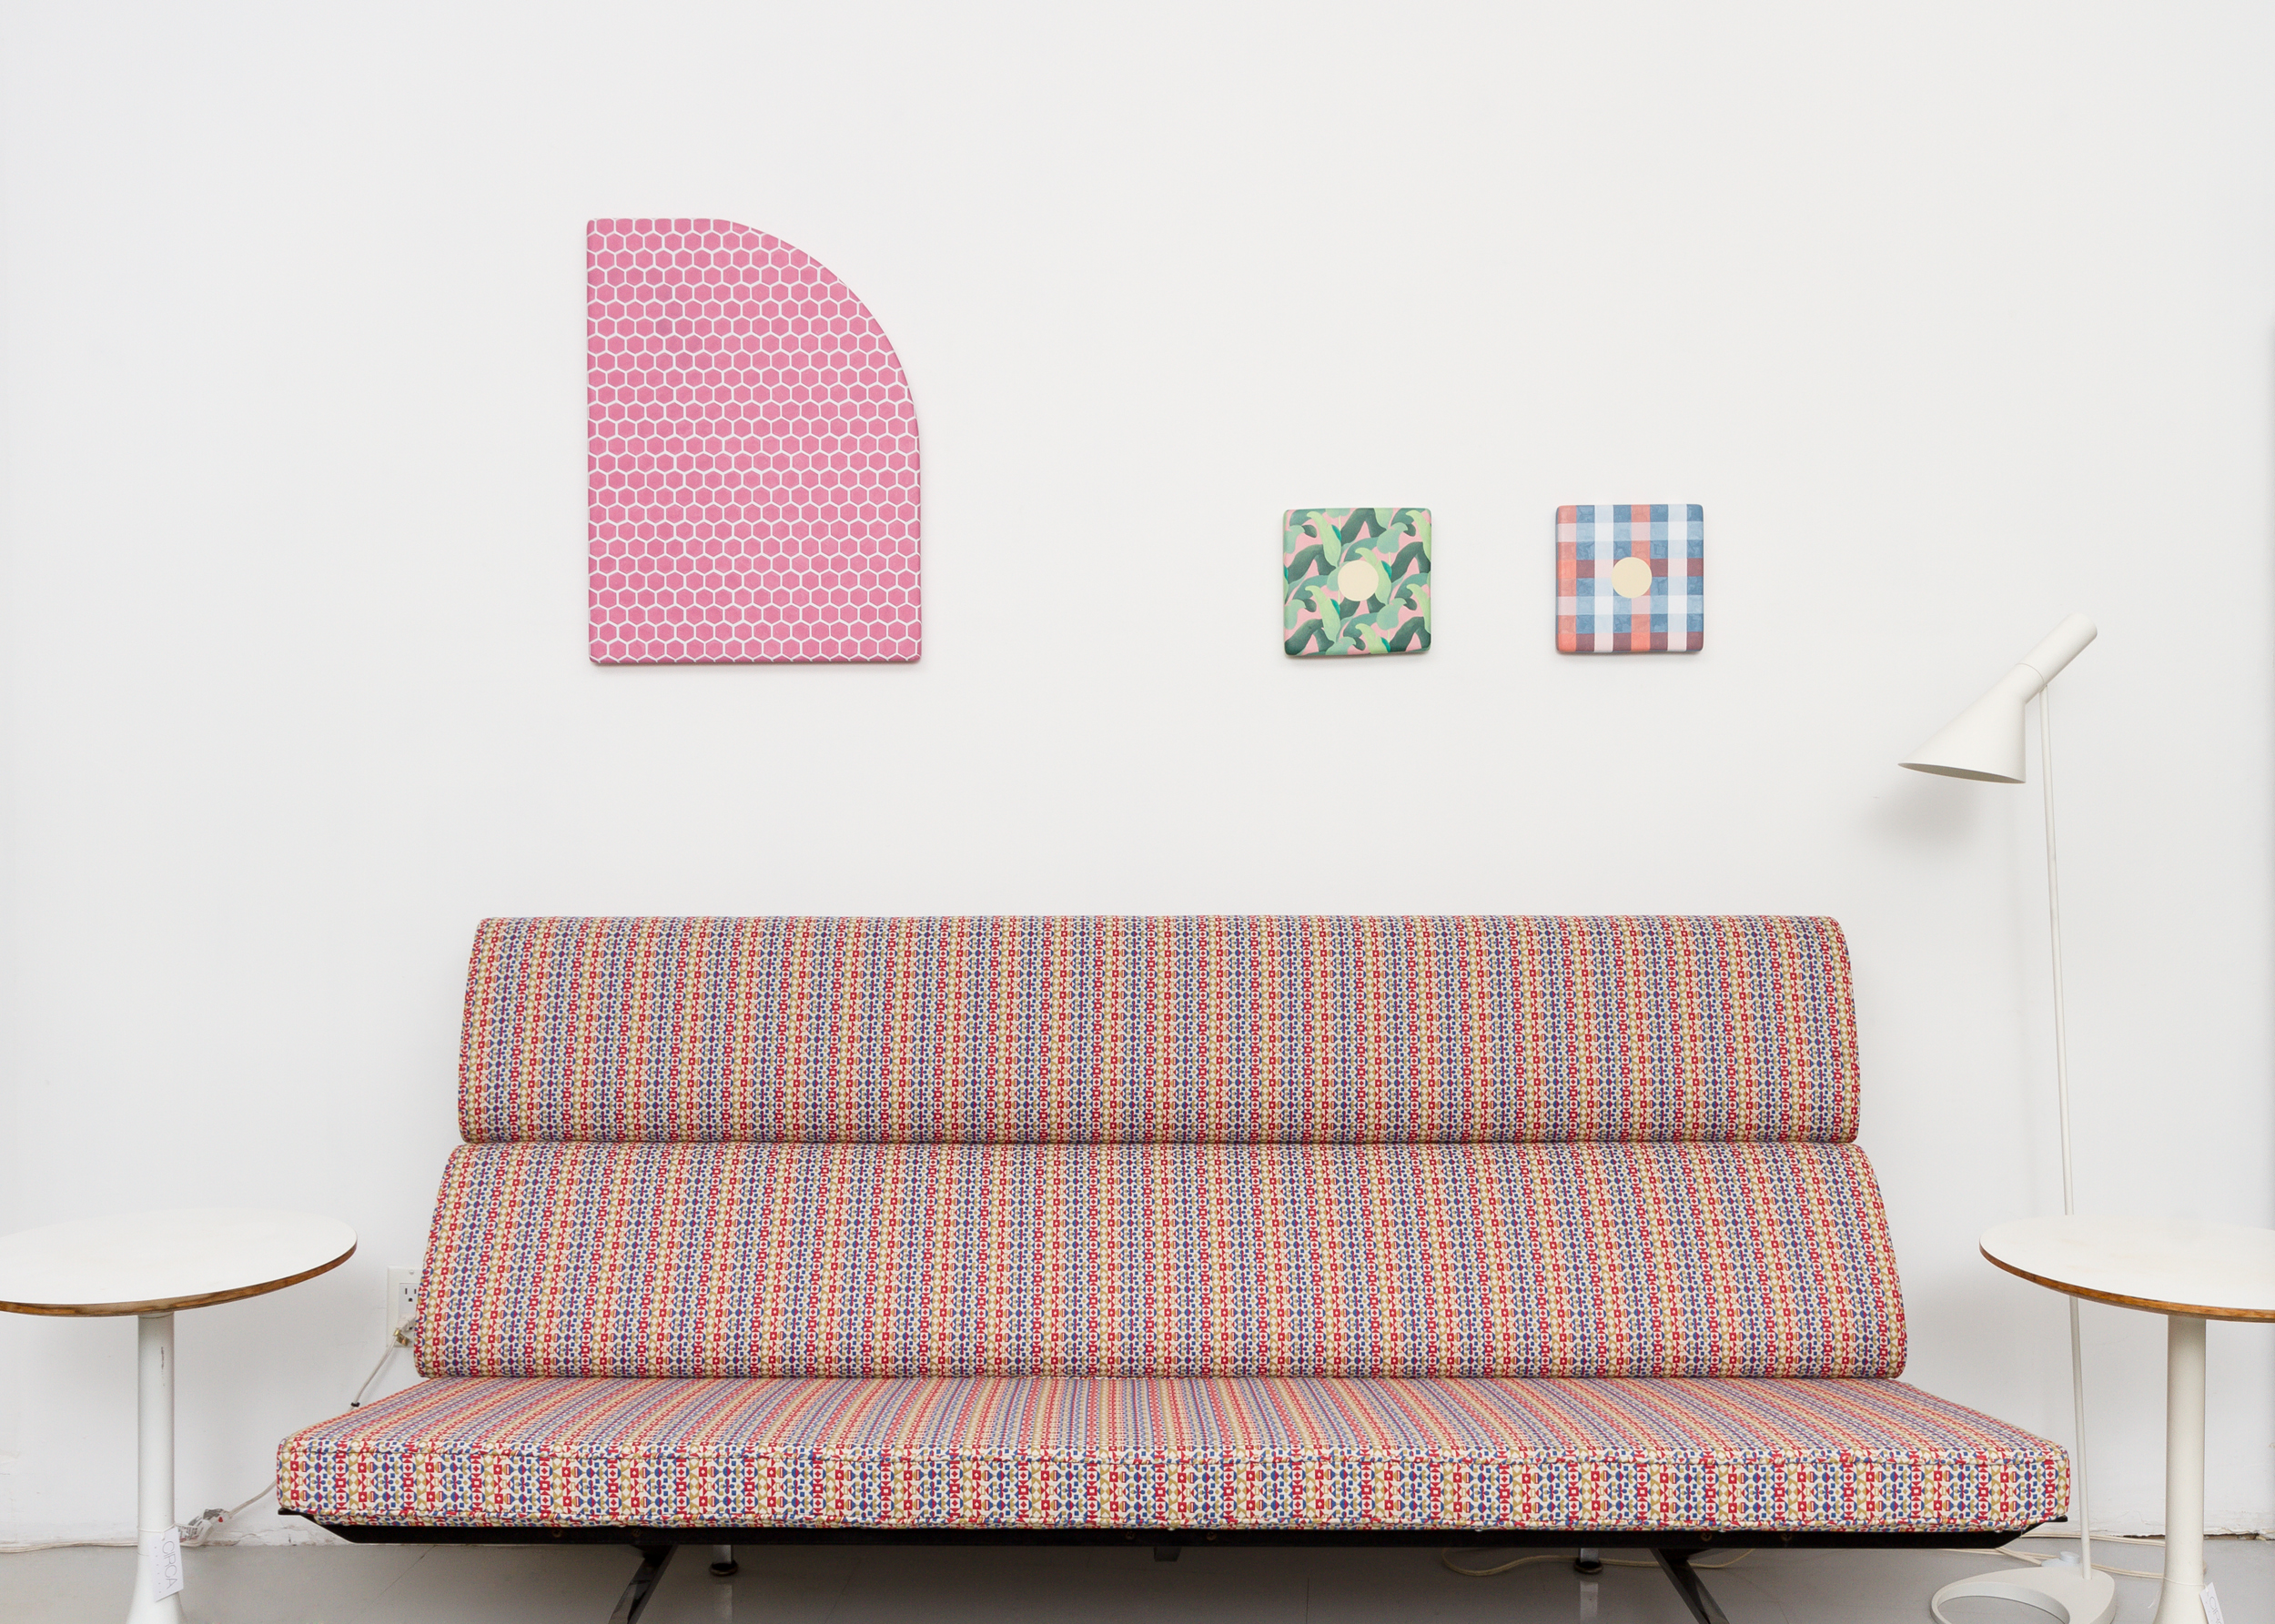 Cribs, 2015 Installation View